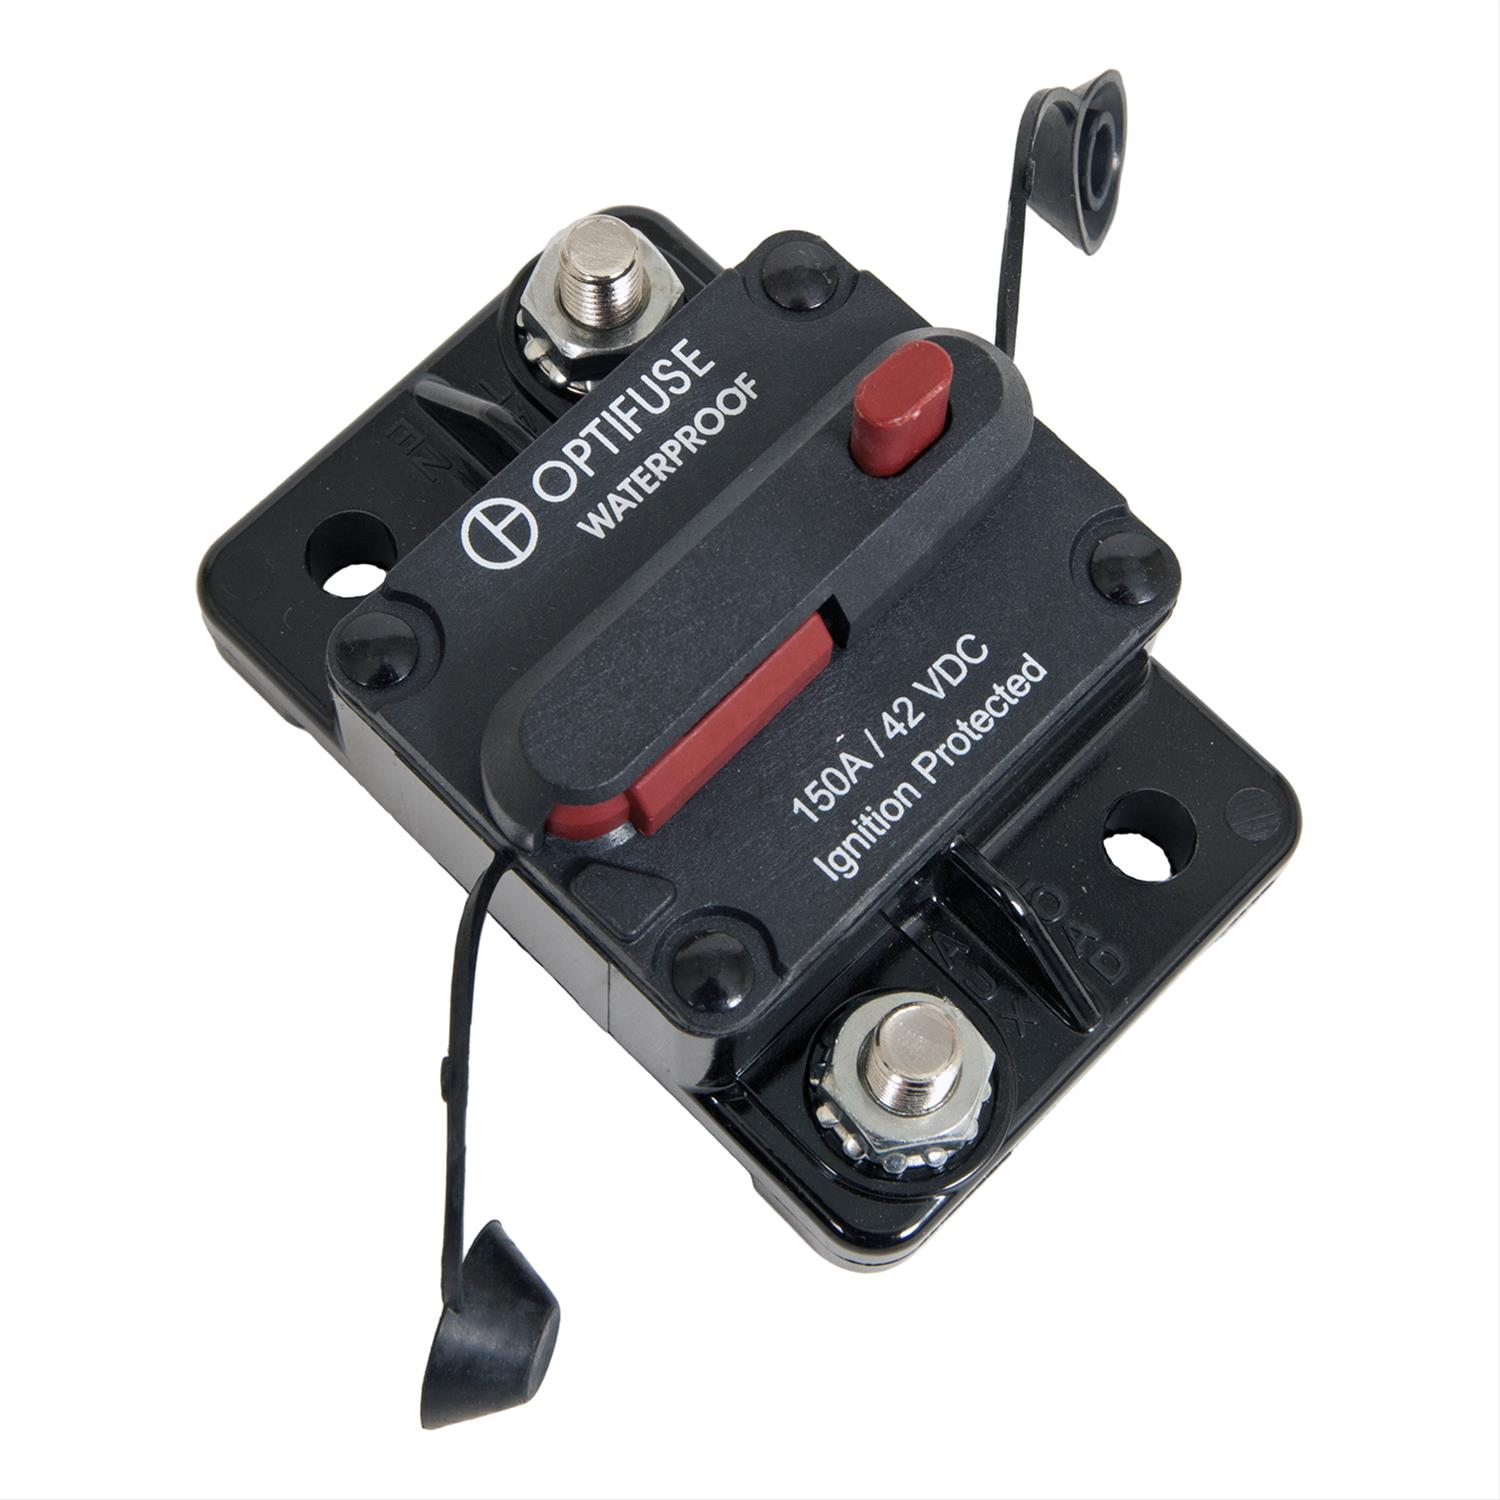 hight resolution of summit racing manual reset circuit breakers sum 900271 free shipping on orders over 99 at summit racing